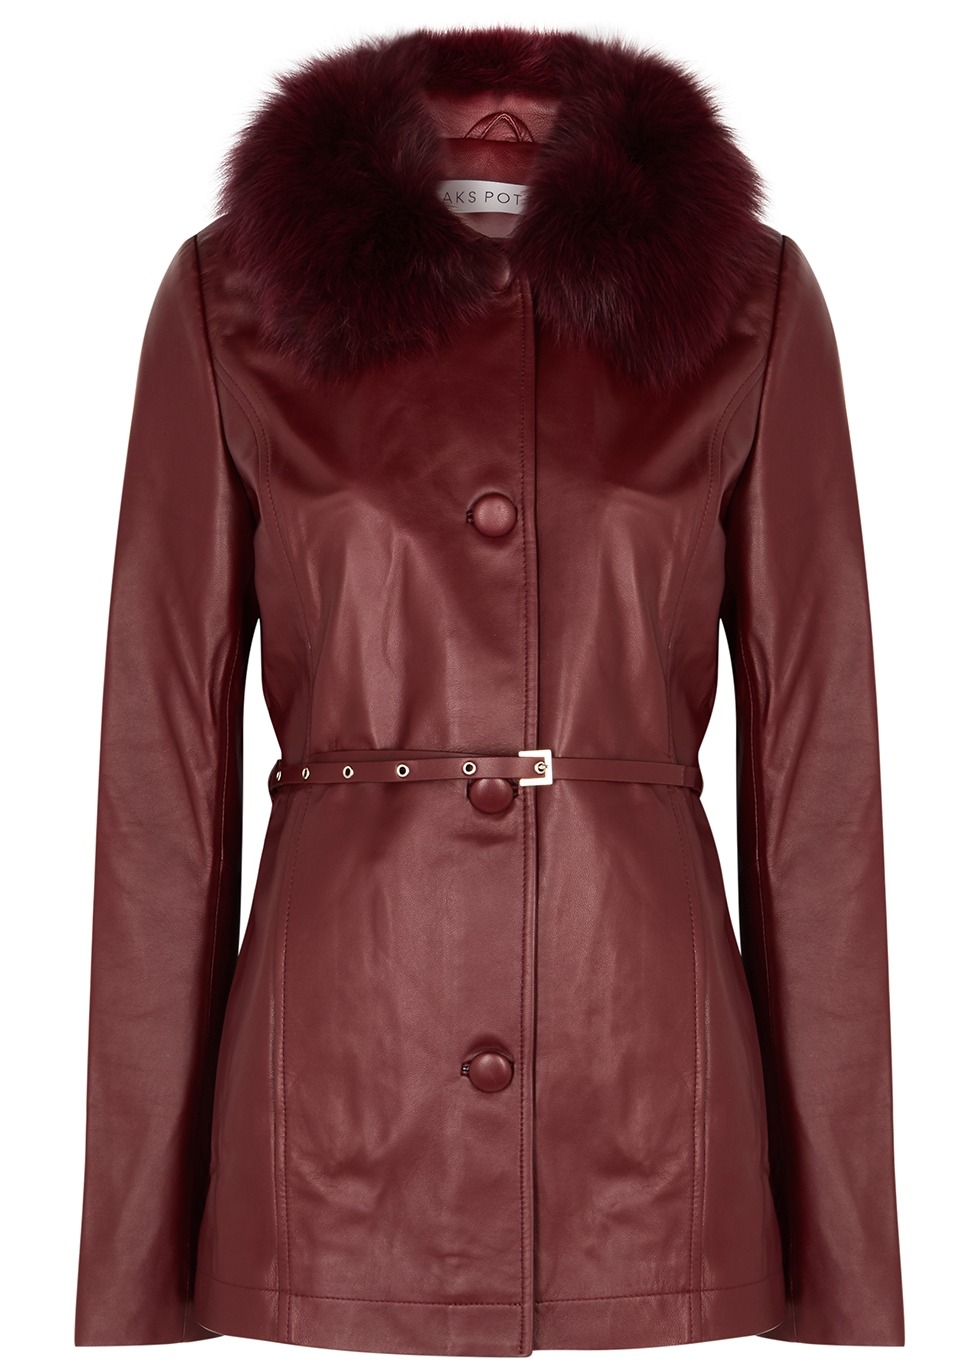 Cholet fur-trimmed leather jacket